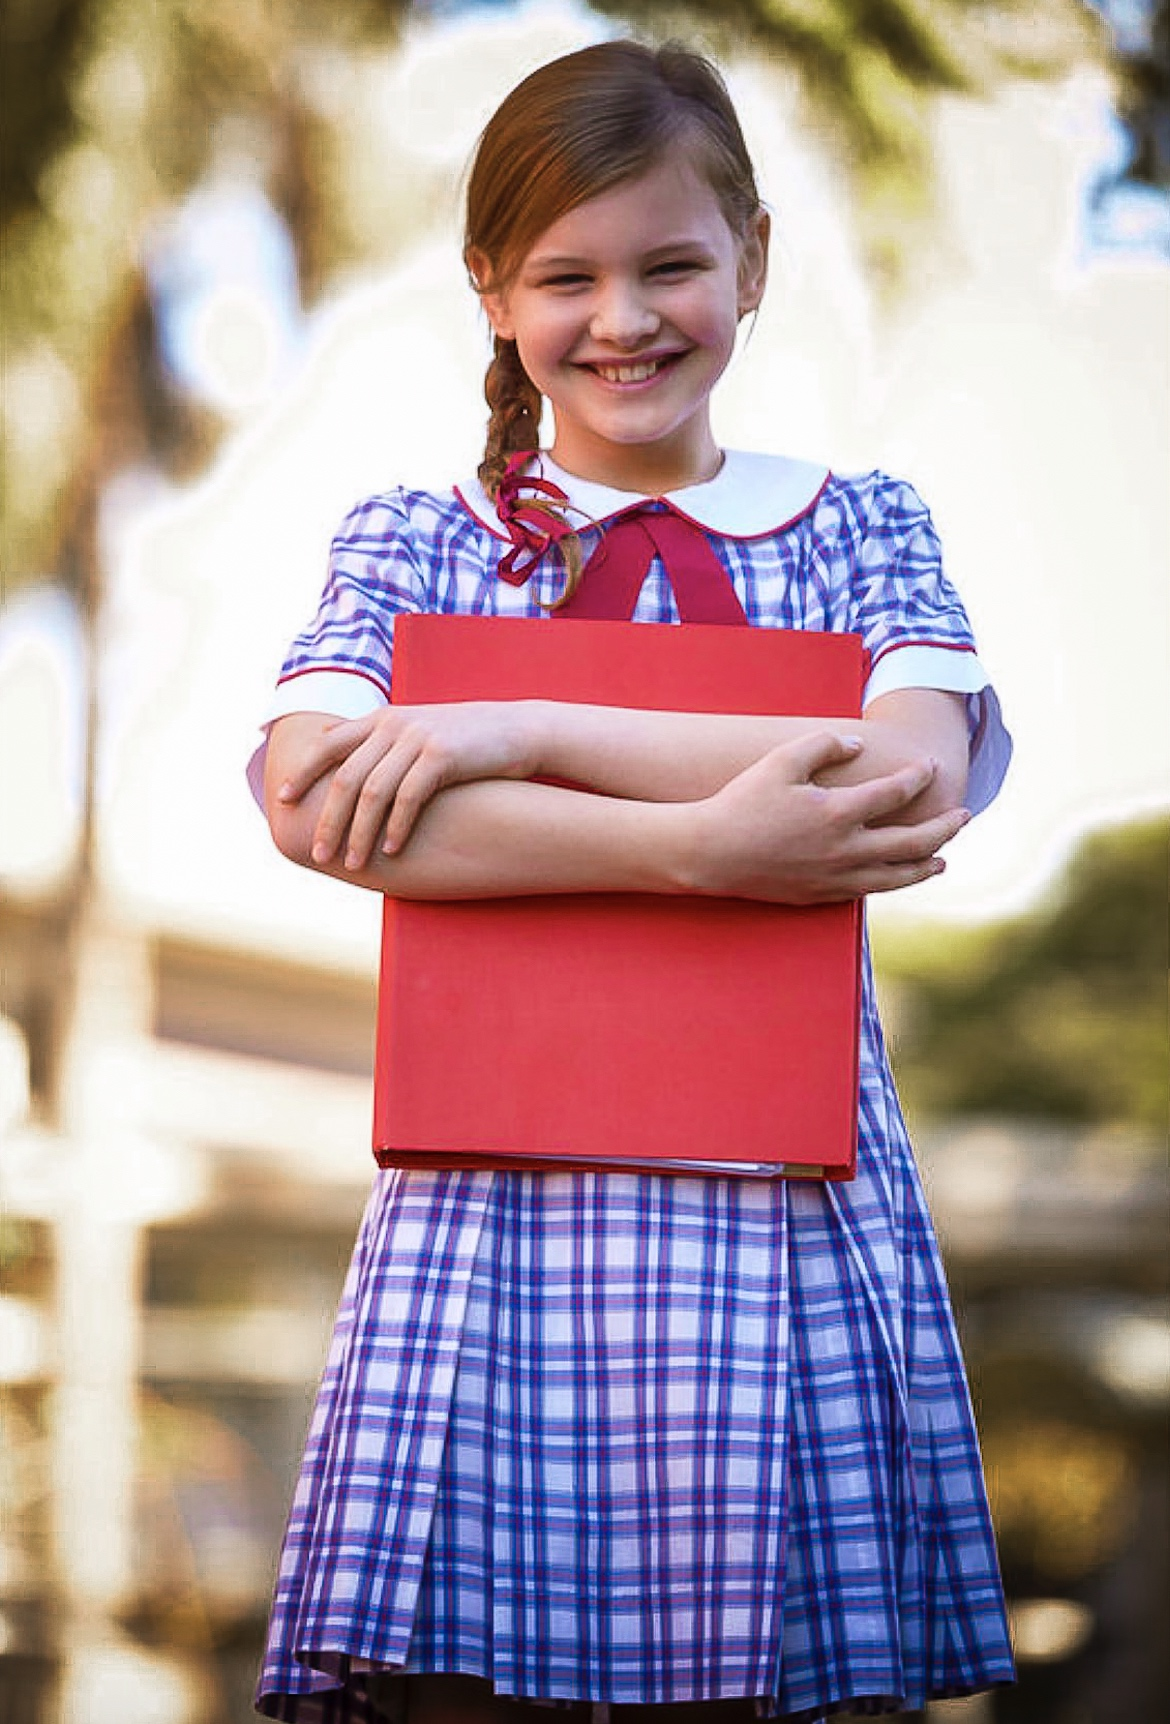 transgender children essay This free psychology essay on essay: gender roles and child development is perfect for psychology students to use as an example.